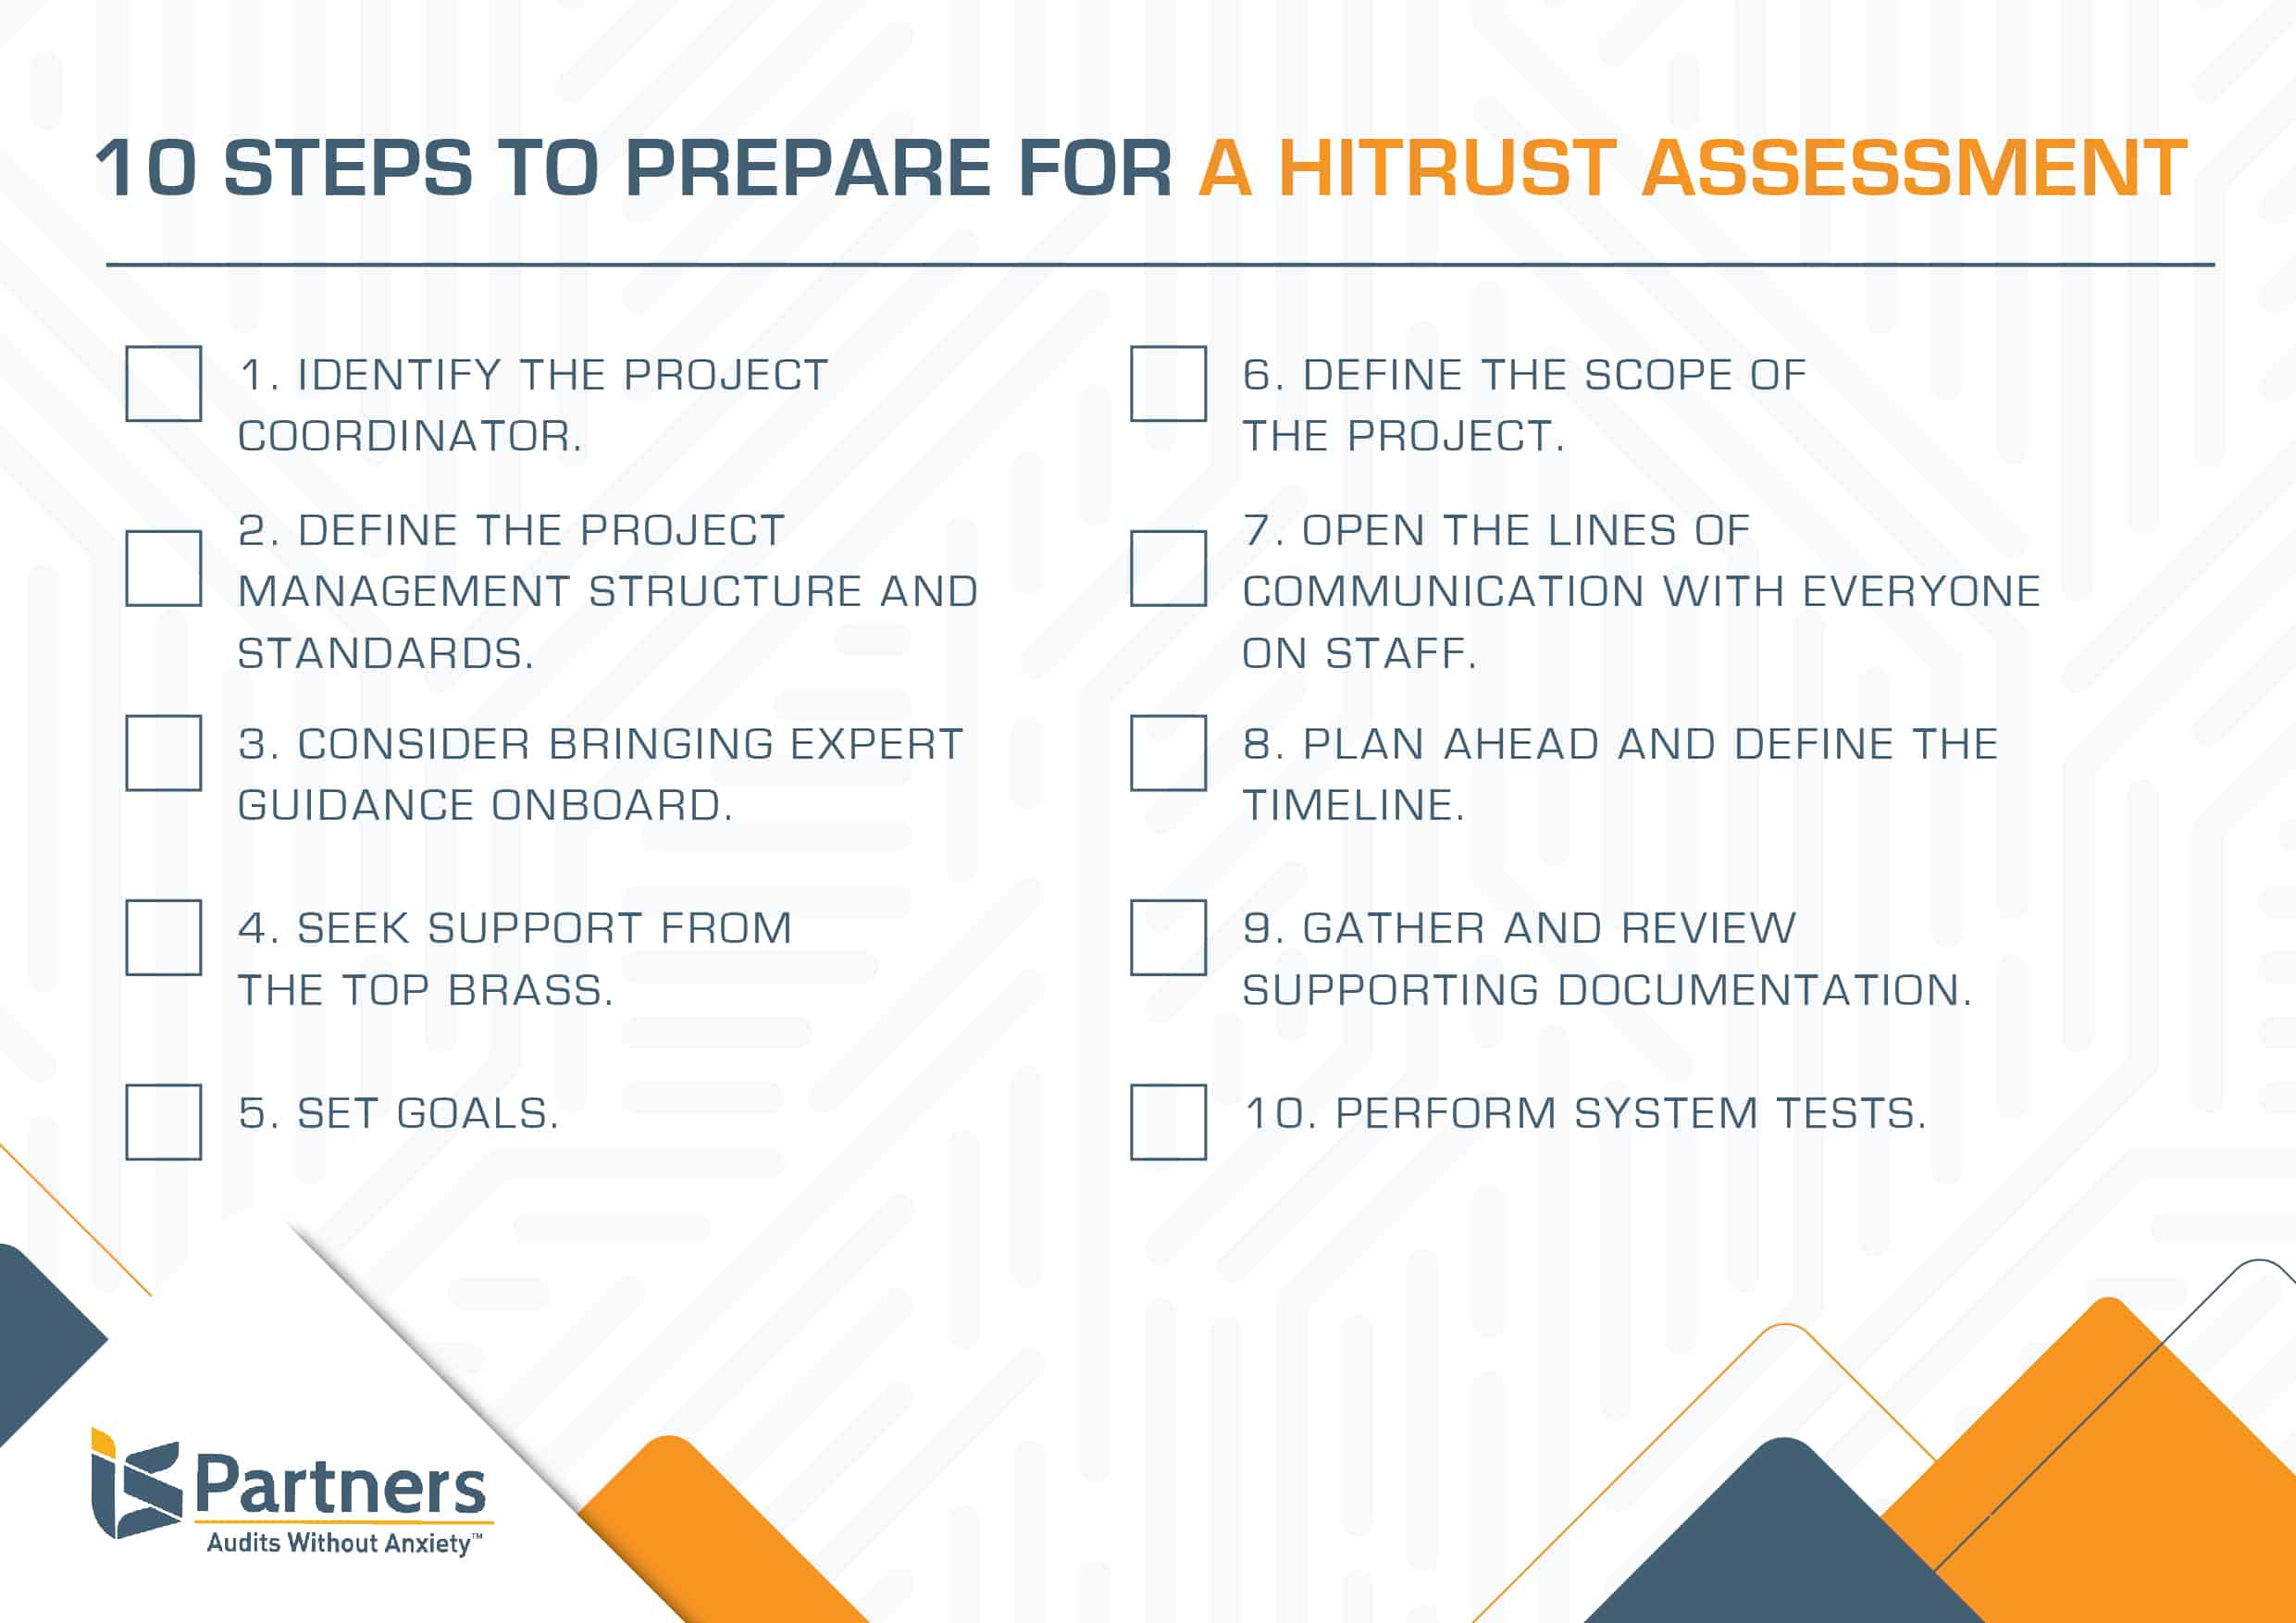 Checklist to help prepare for HITRUST assessment